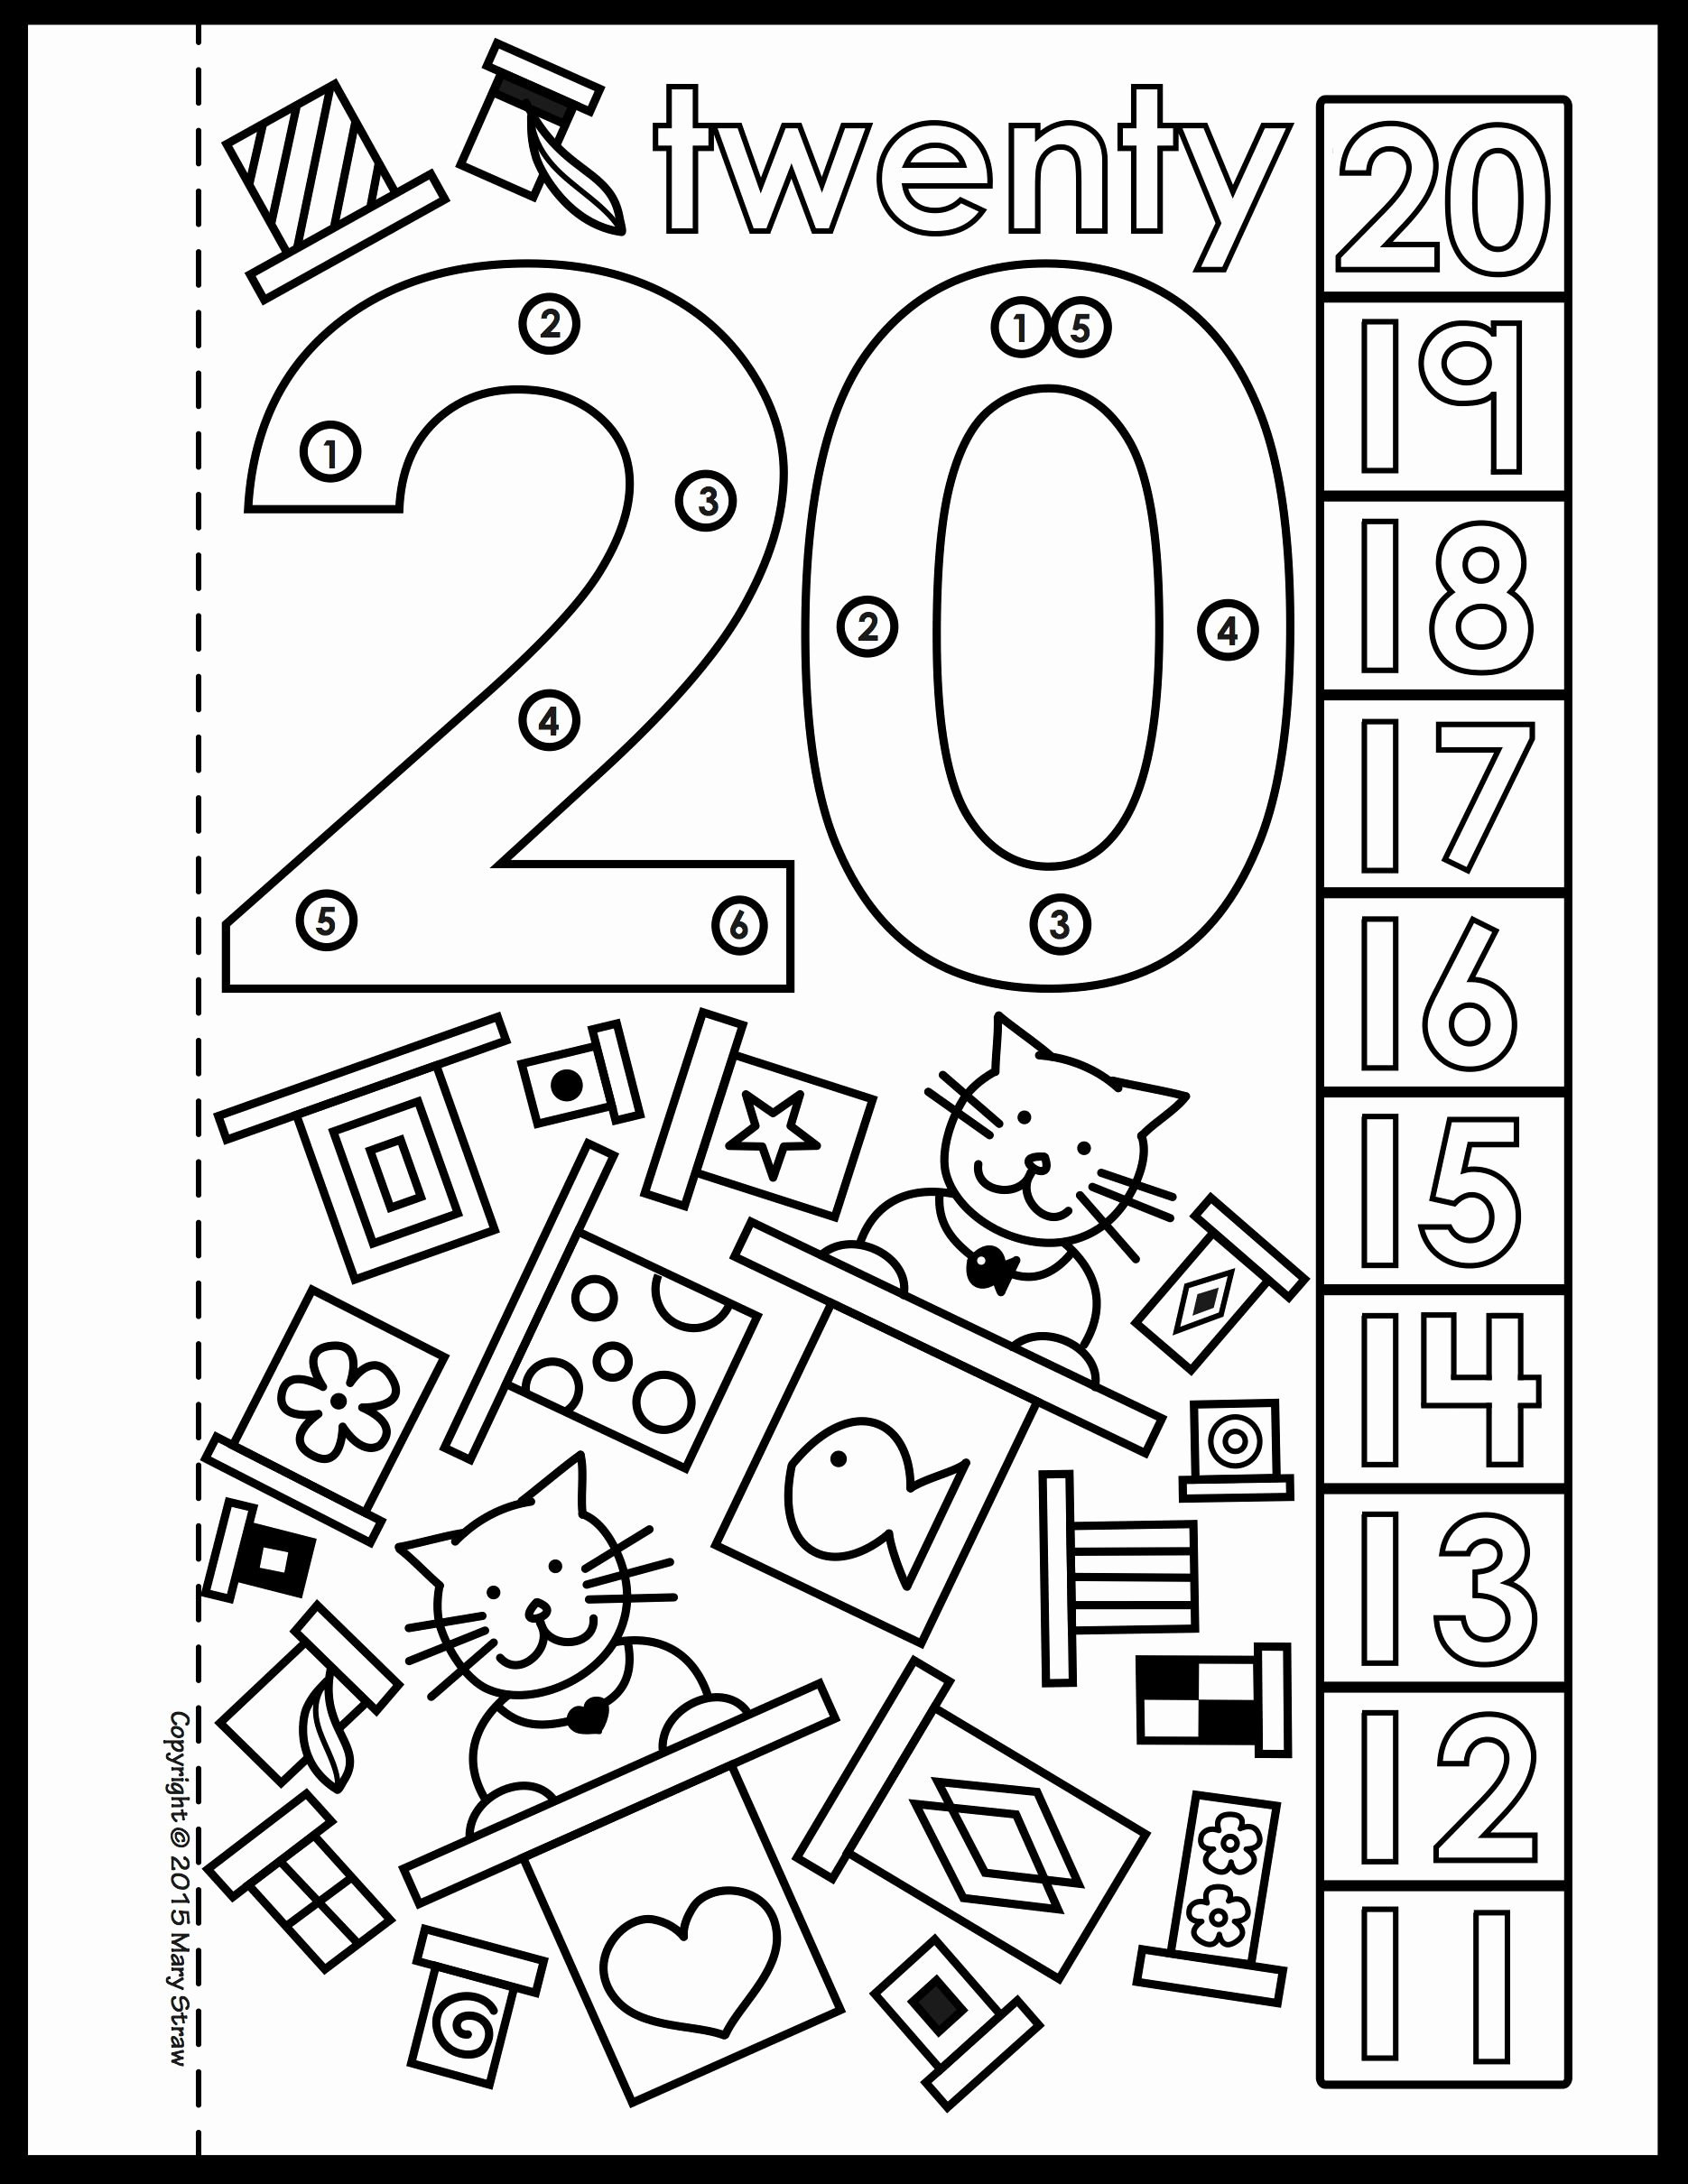 Printable Number Worksheets for Preschoolers New Worksheets Kingandsullivan Tracing Numbers for Preschool